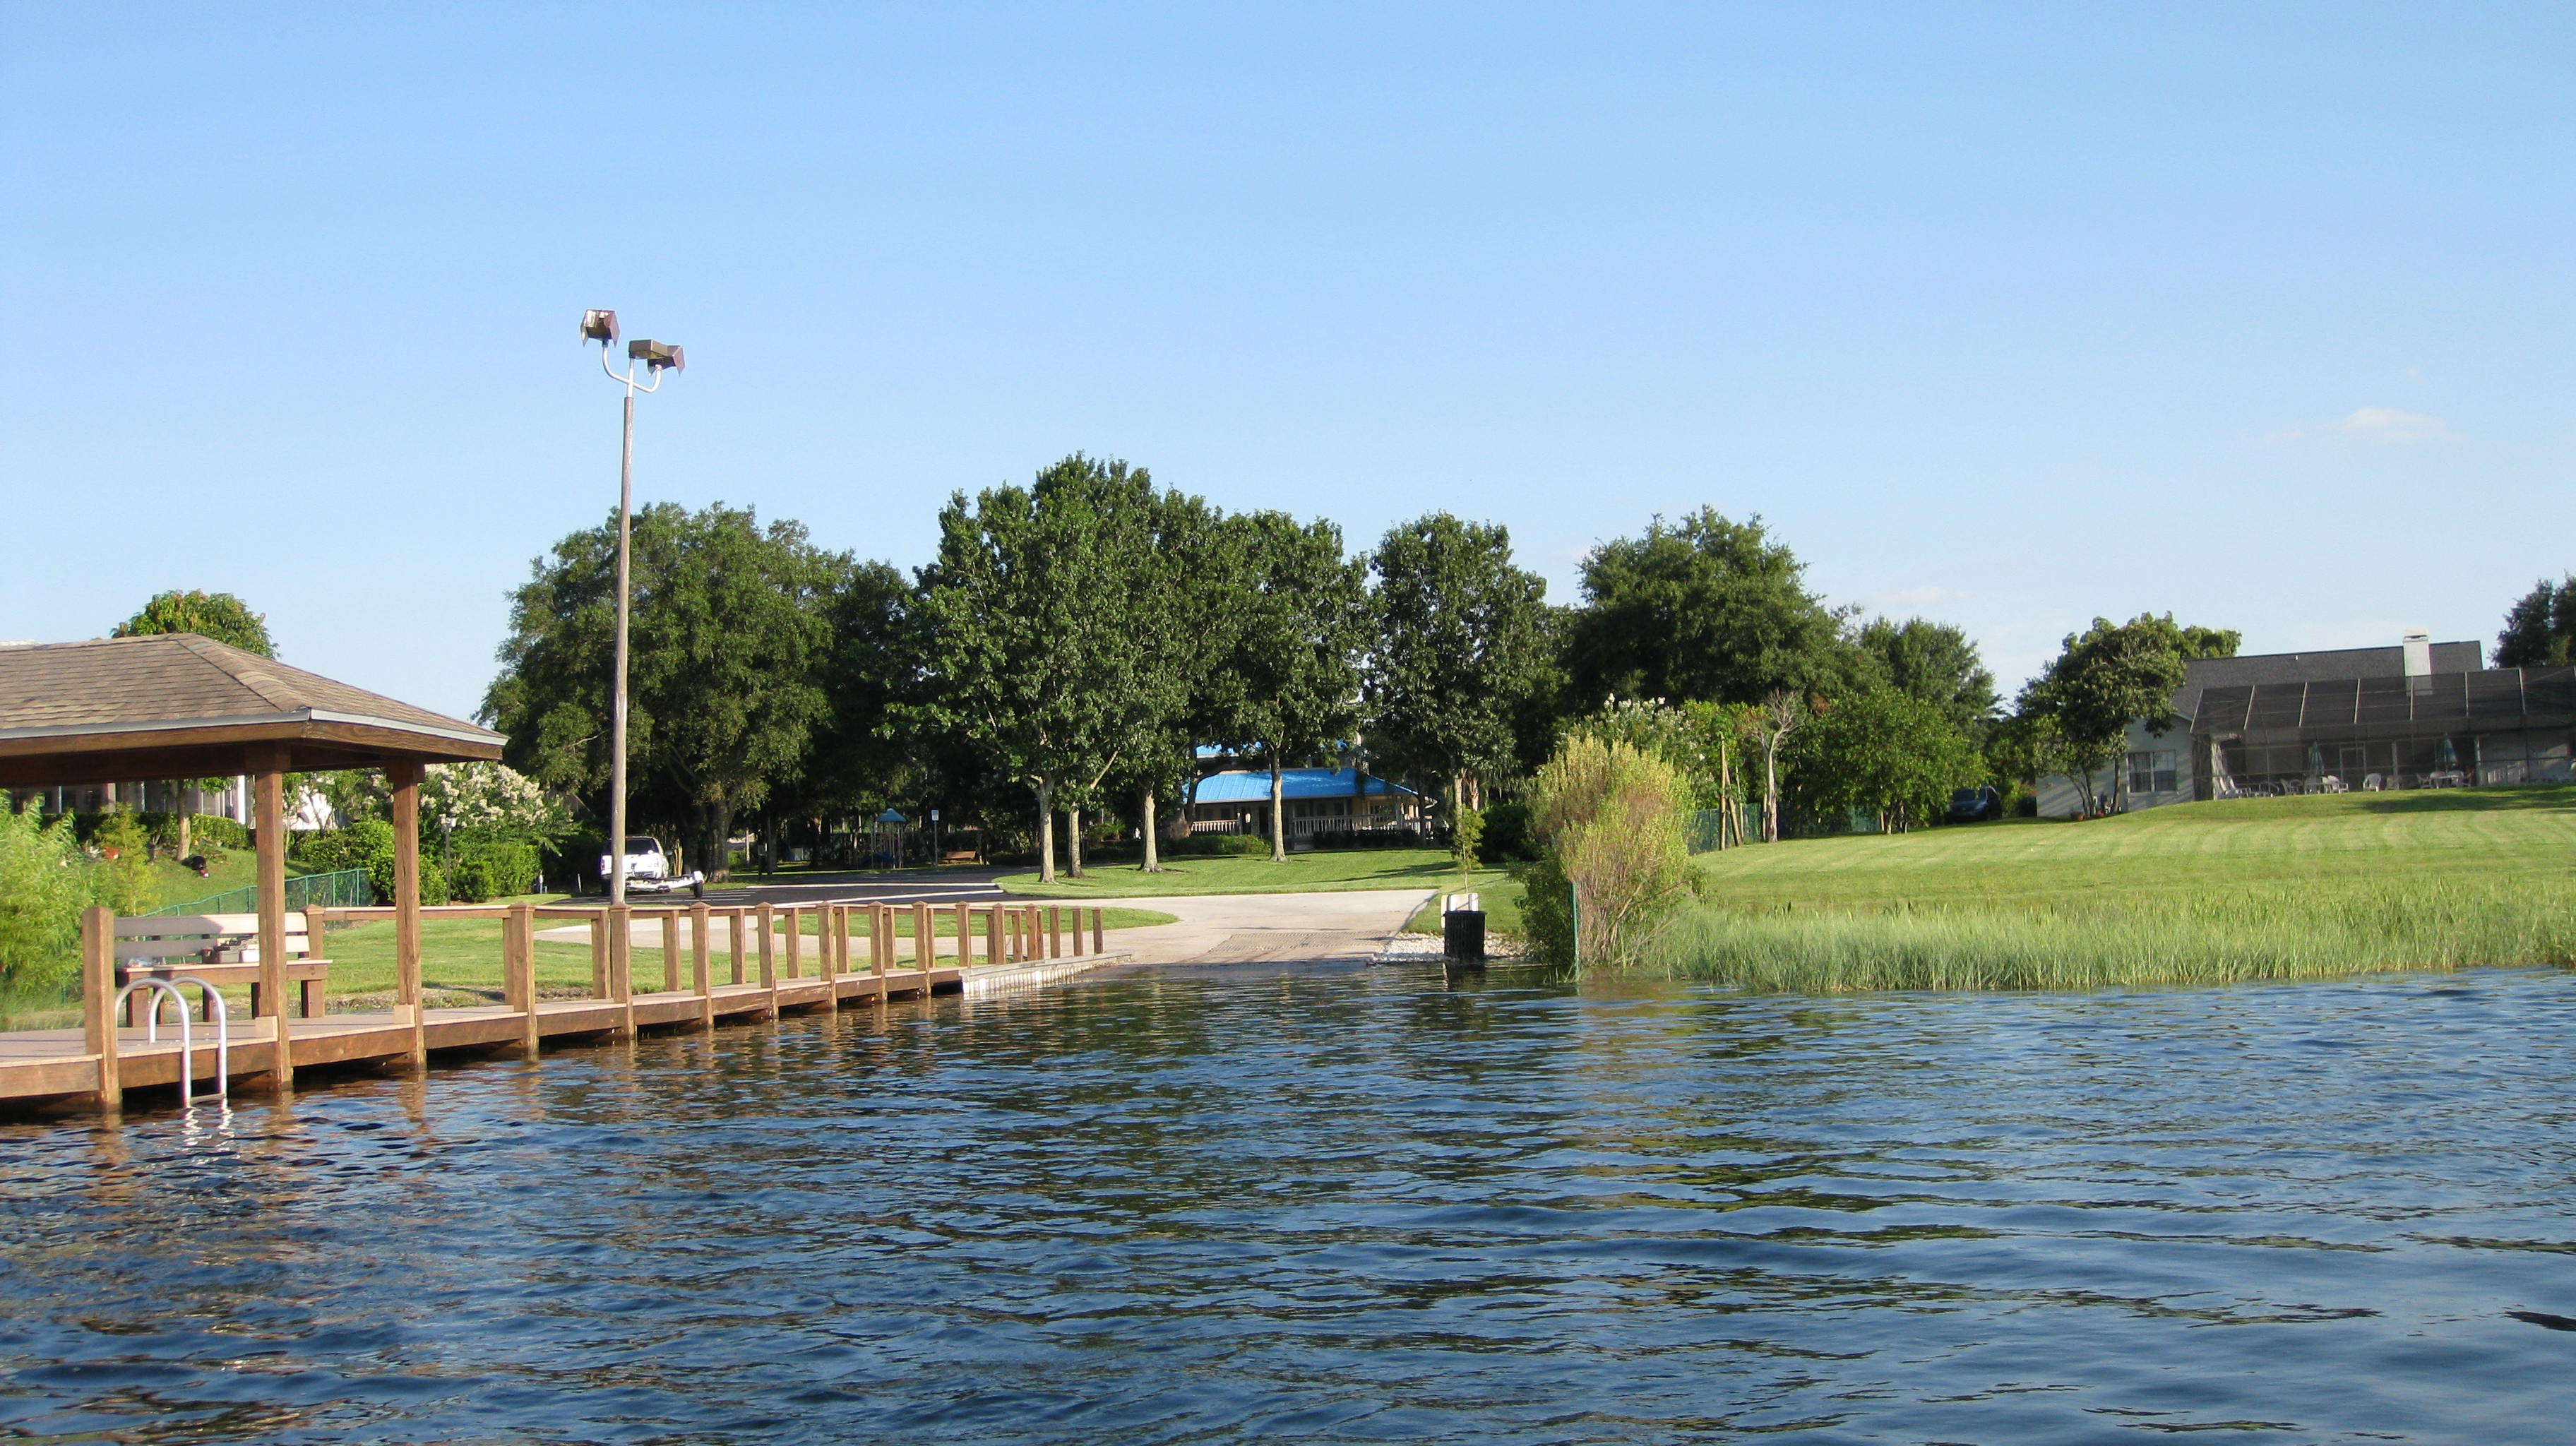 Private lakes bass fishing guide orlando adventures for Take me fishing lake locator